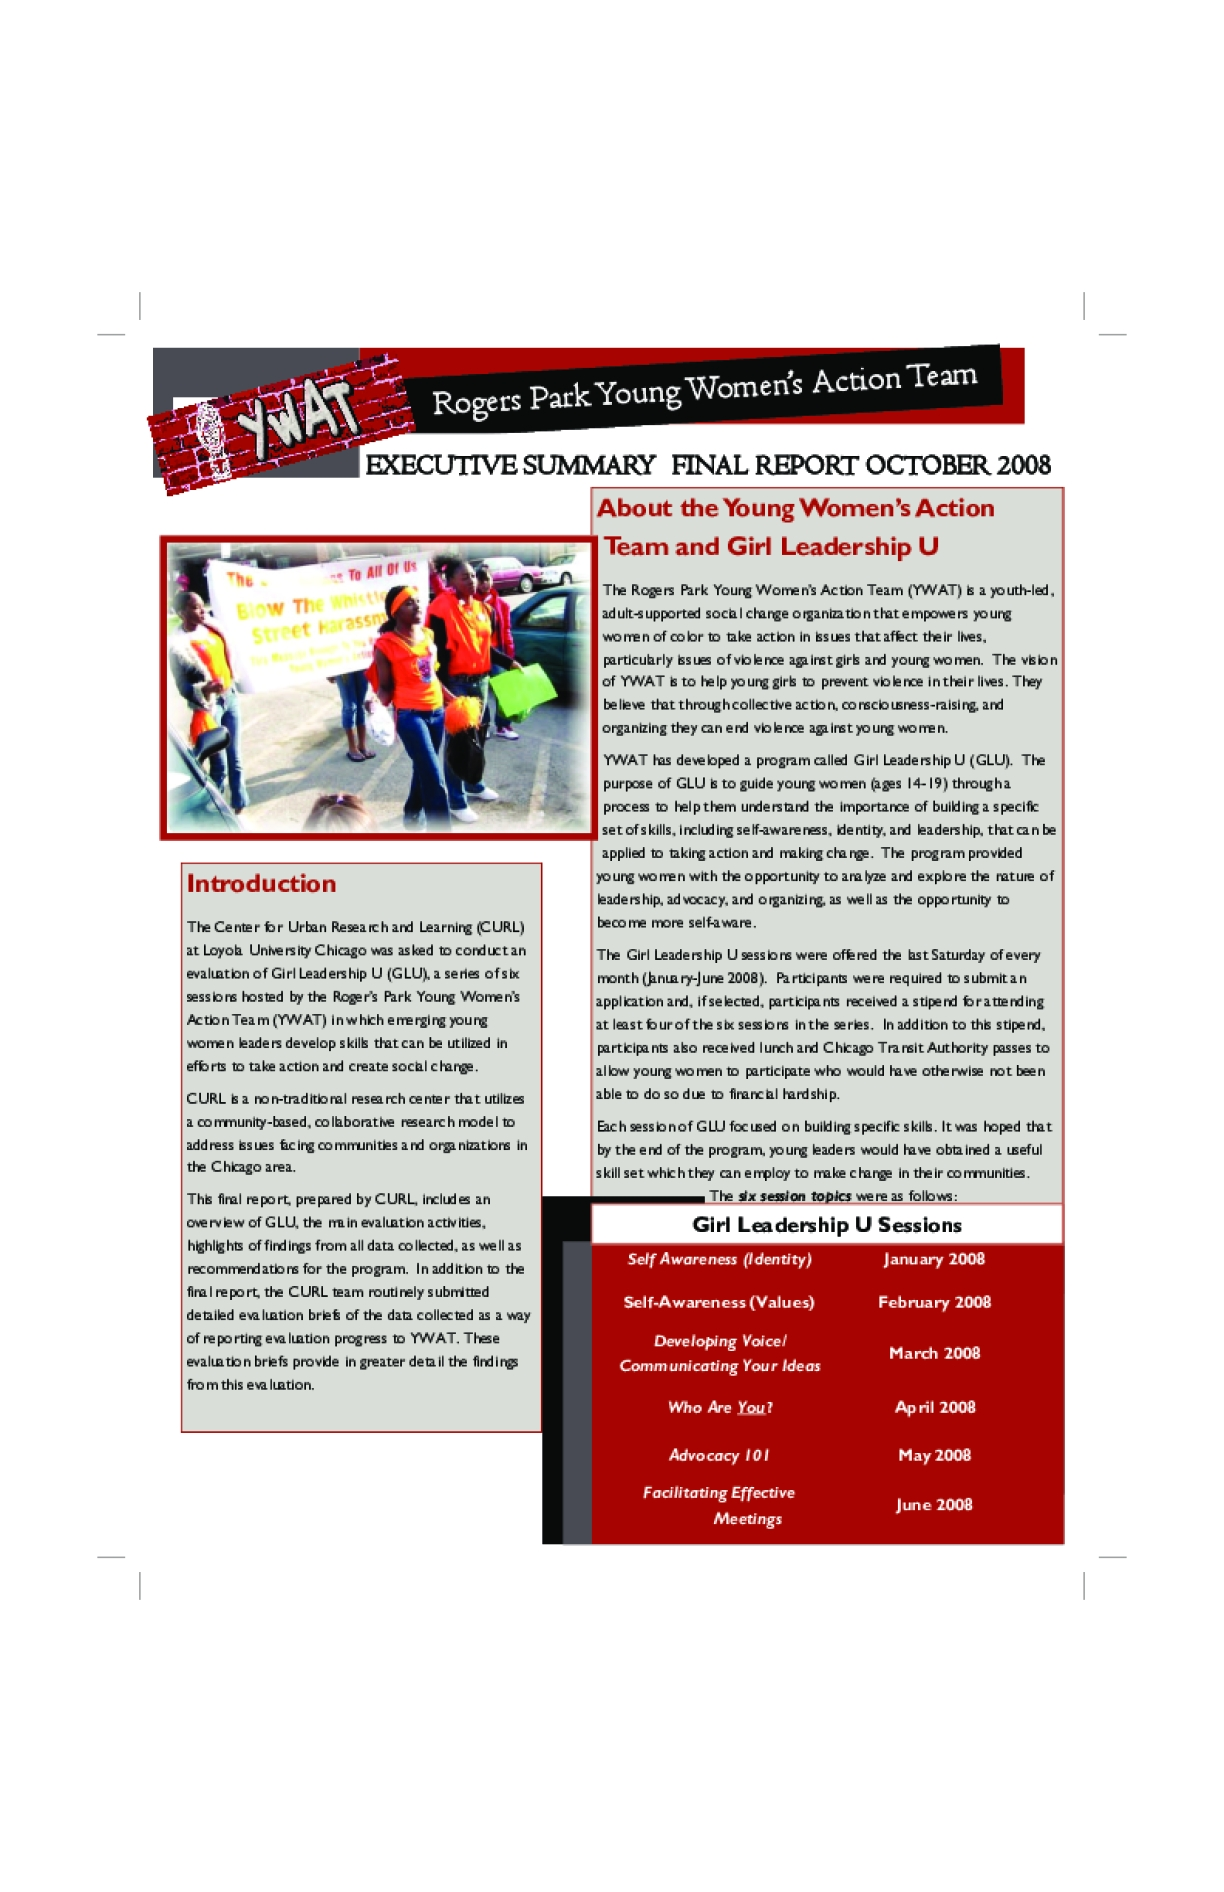 Rogers Park Young Women's Action Team: Executive Summary Final Report